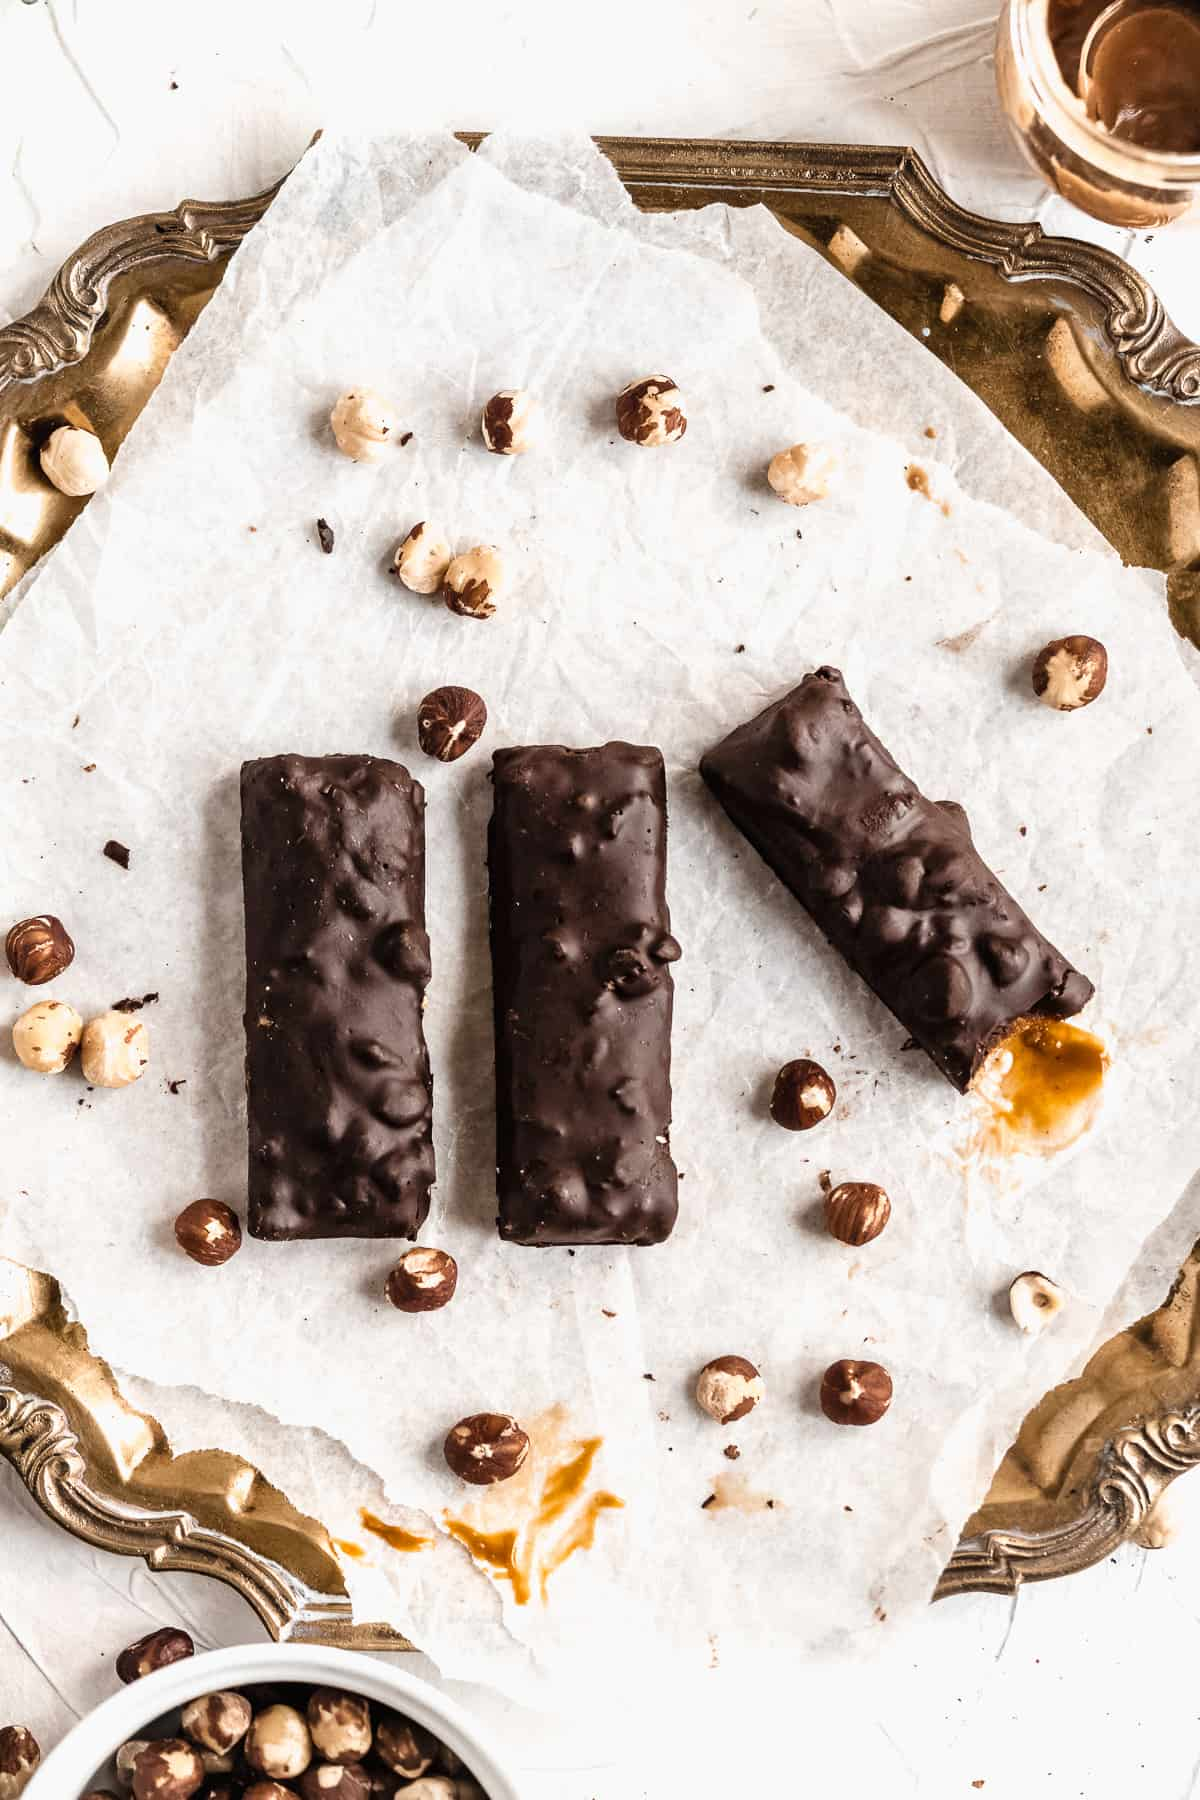 Overhead photo of three Vegan Hazelnut Snicker Bars sitting on white parchment paper on a vintage silver tray.  A bite is taken out of one bar to show the gooey inside.  Additional hazelnuts are sprinkled around.